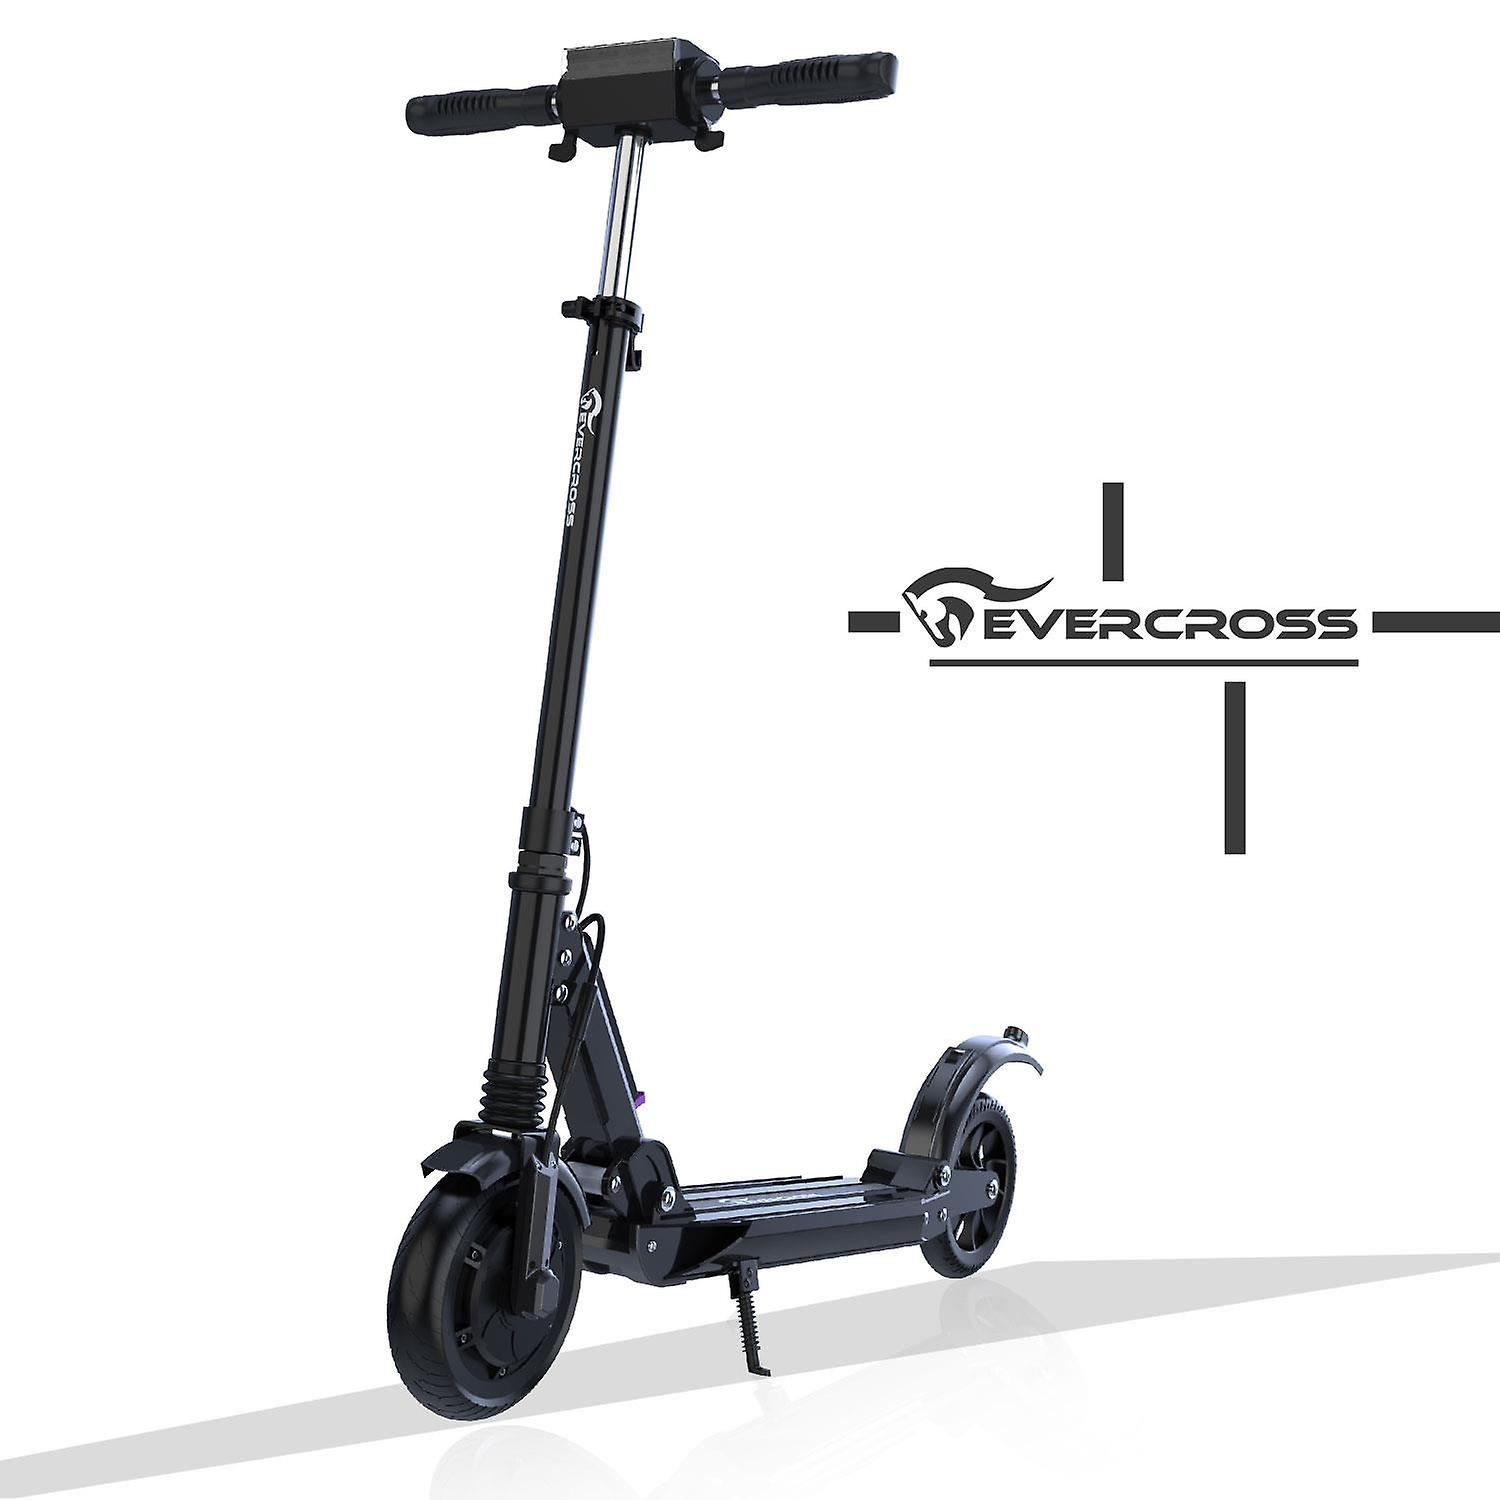 Evercross Electric Scooter Folding Scooter 350W Motor, Anti-Skid Tire and LCD Screen, Waterproof